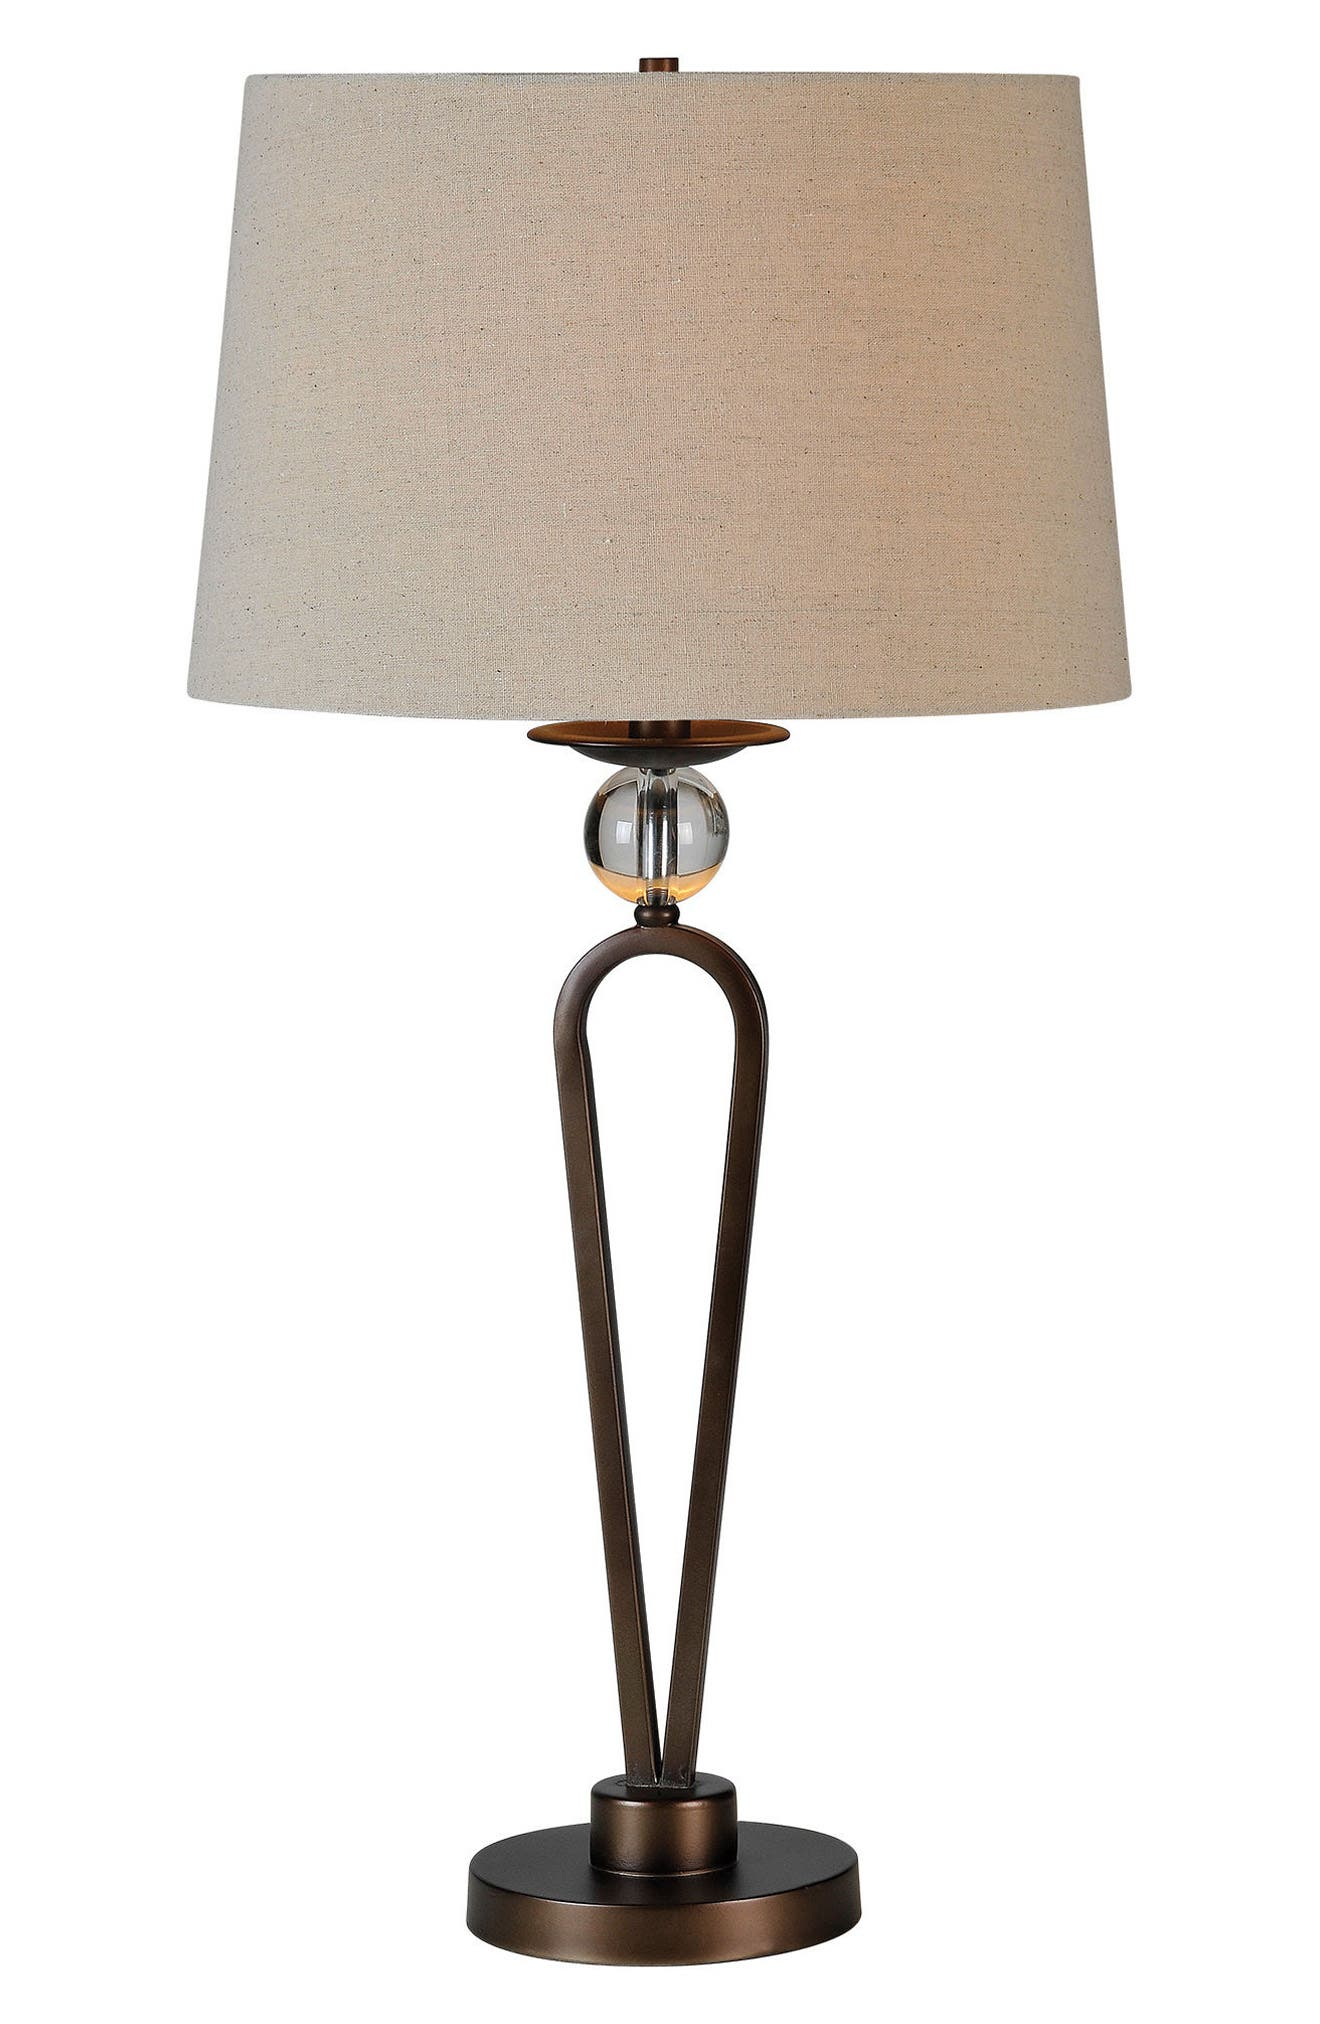 Pembroke Table Lamp,                         Main,                         color, Bronze